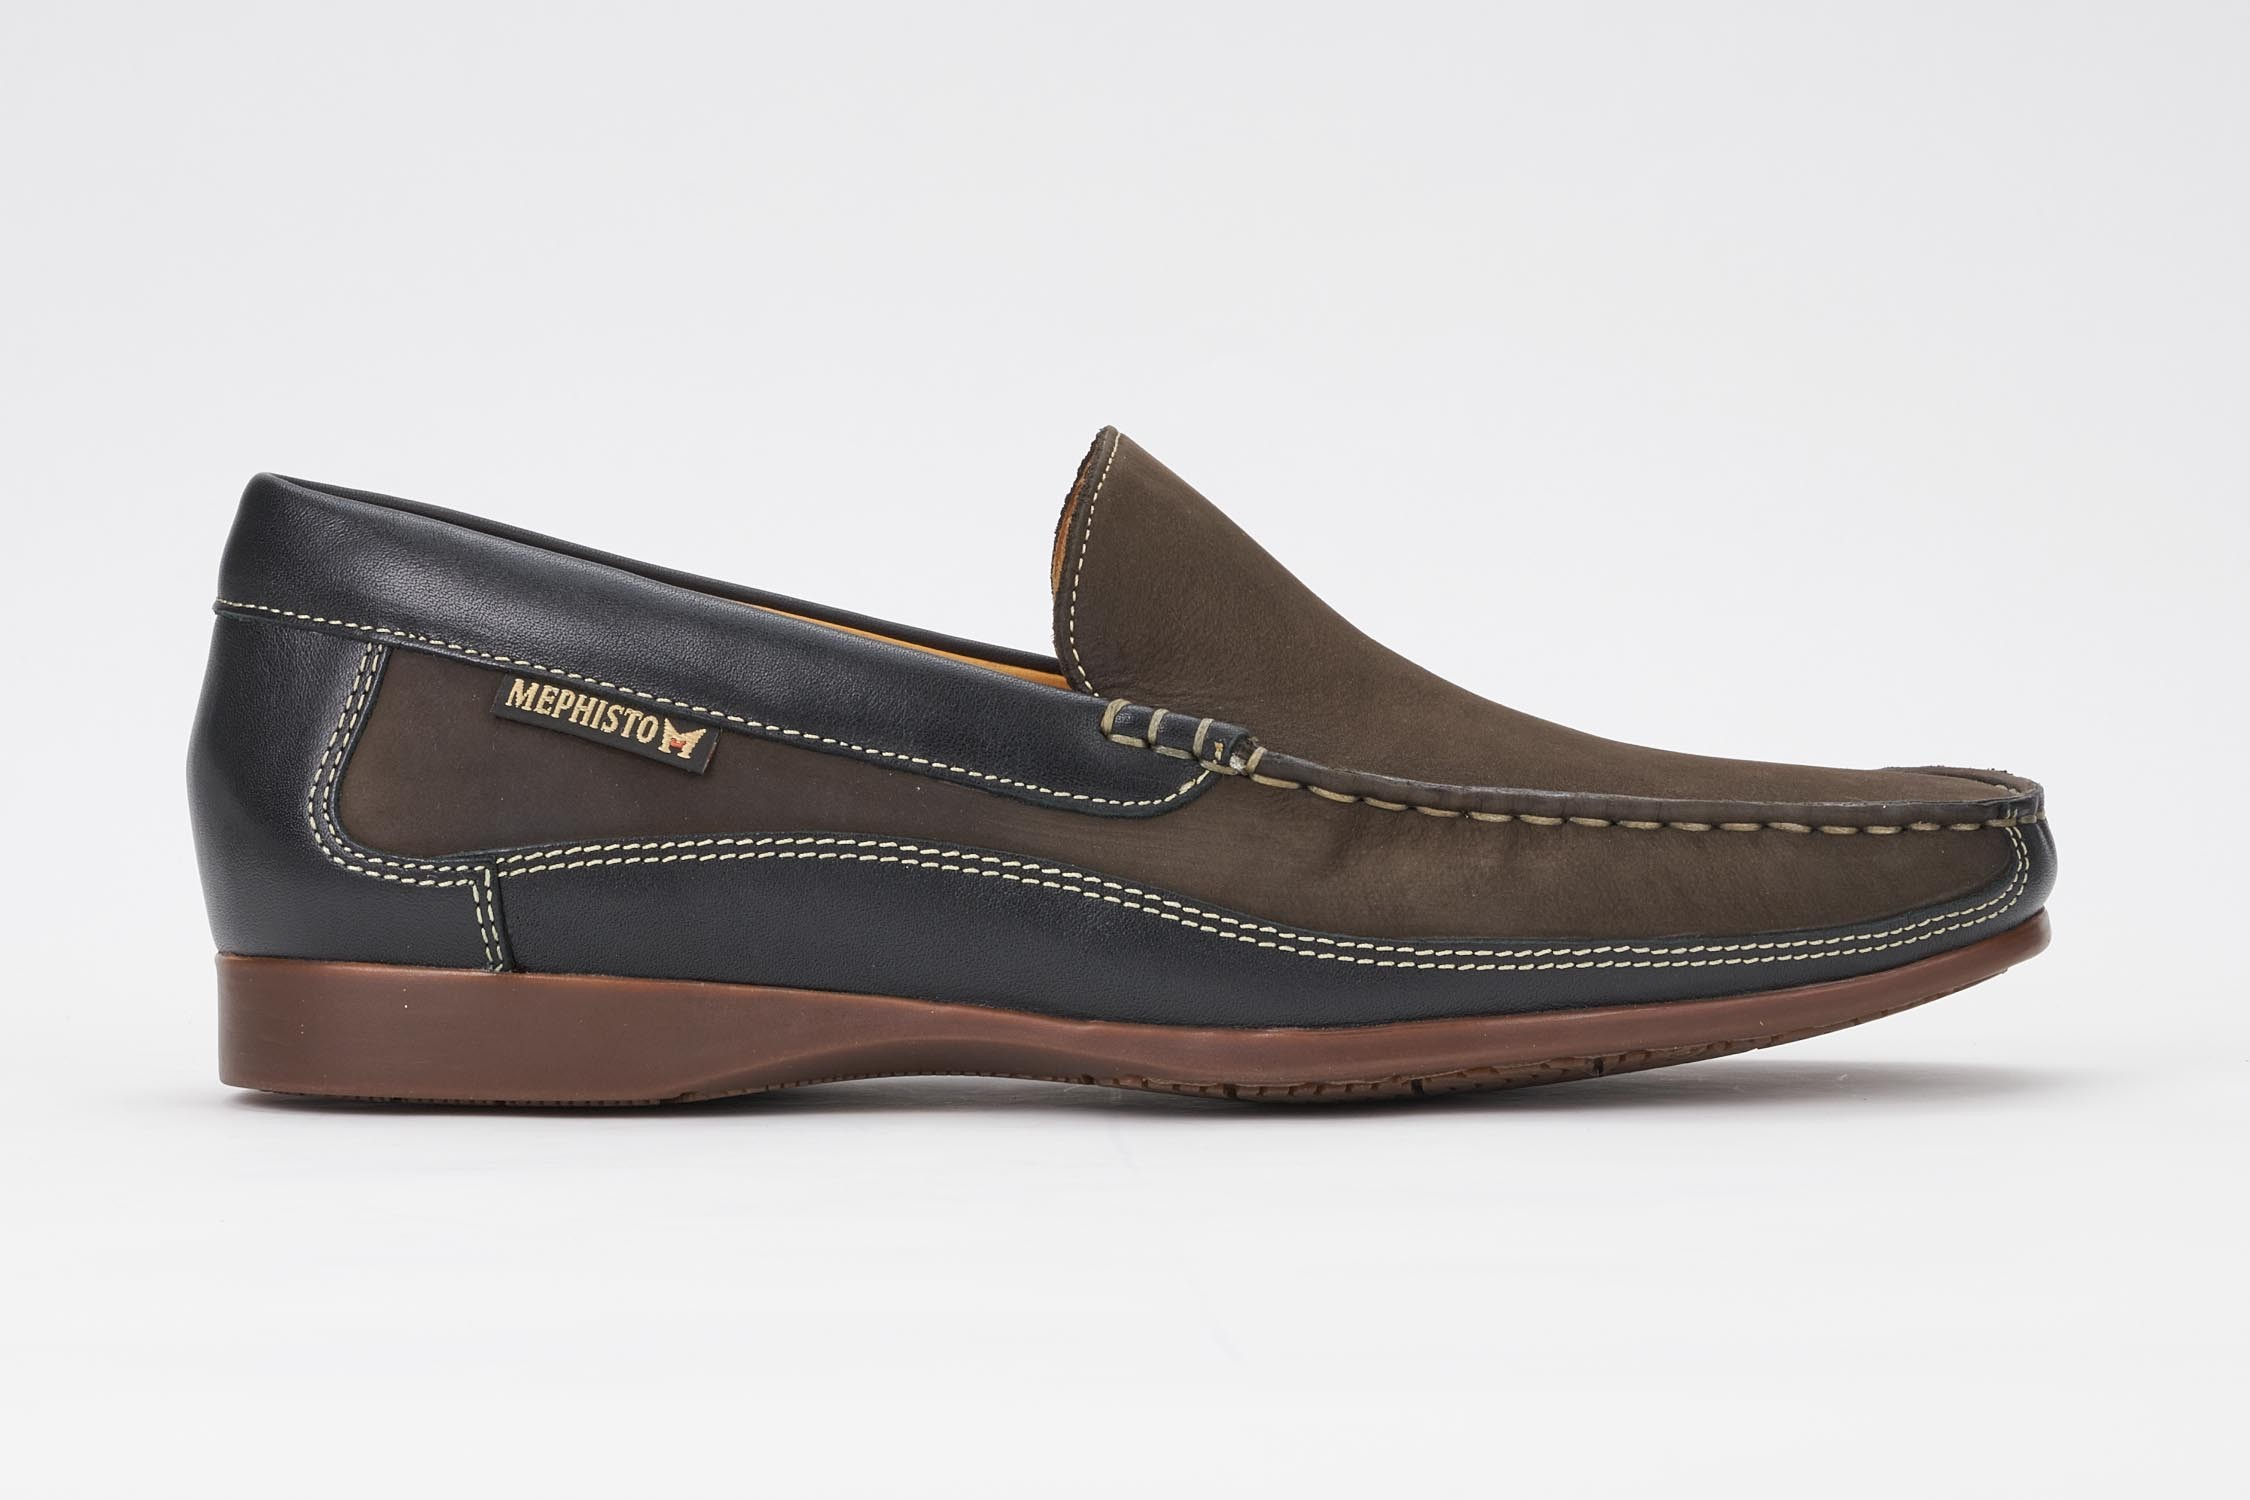 693cc9c77c3 BADUARD Slip-on - MEPHISTO Men s Loafers and Slip-ons